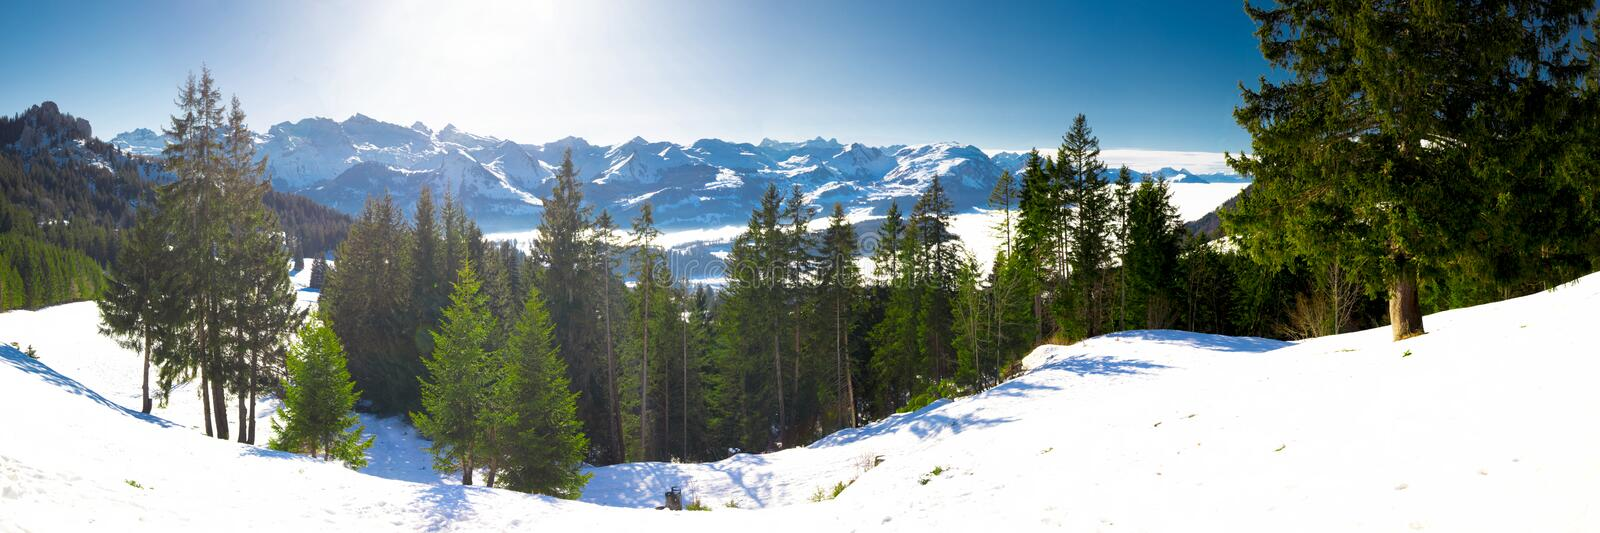 Beautiful winter landscape panorama. Swiss Alps covered by snow in Ibergeregg, Switzerland, Europe. royalty free stock photography